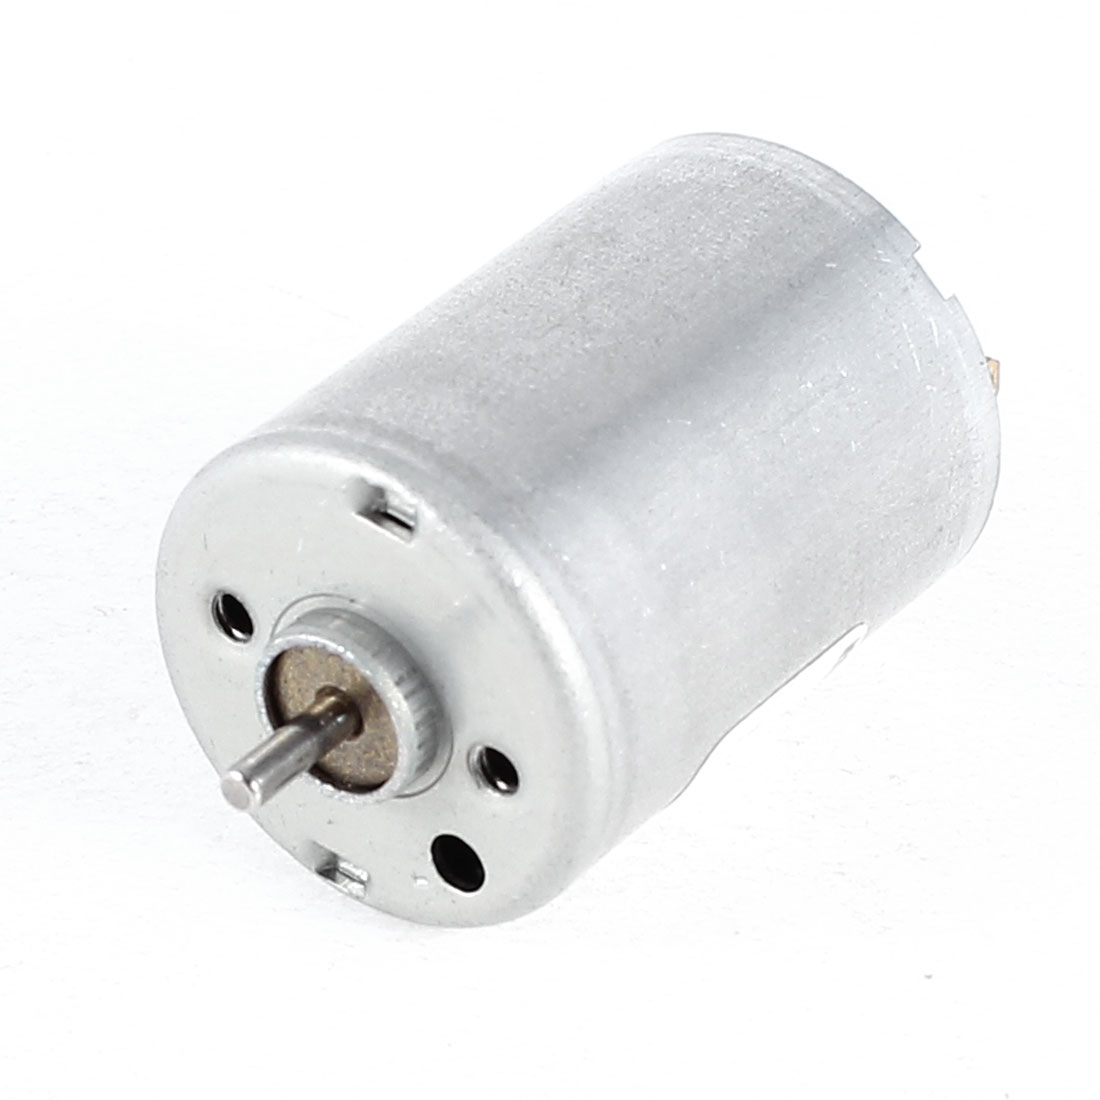 RF-130CH-7000R-Min-1-5mm-Shaft-DC-3V-High-Torque-Mini-Micro-Motor